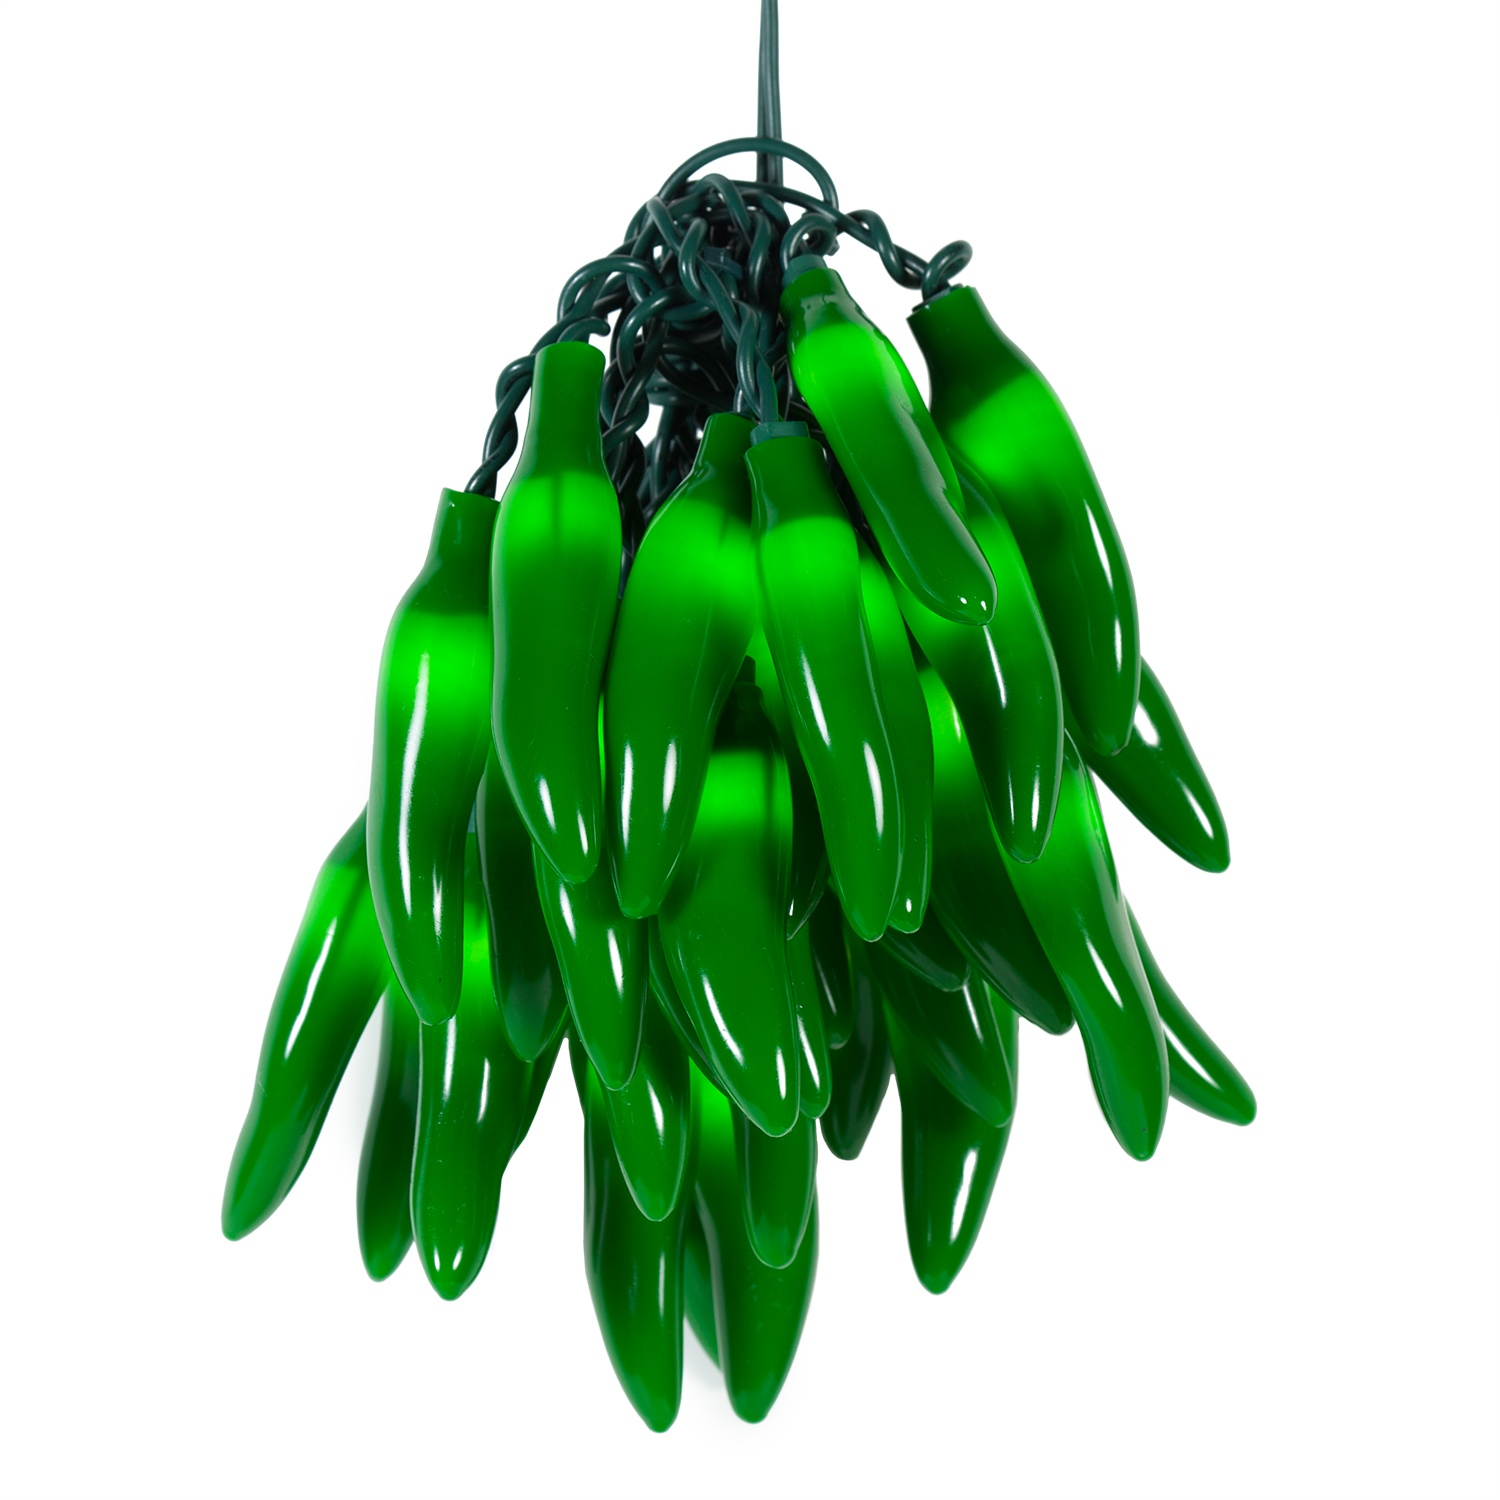 Novelty Lights Green Chili Pepper Cluster Light Set